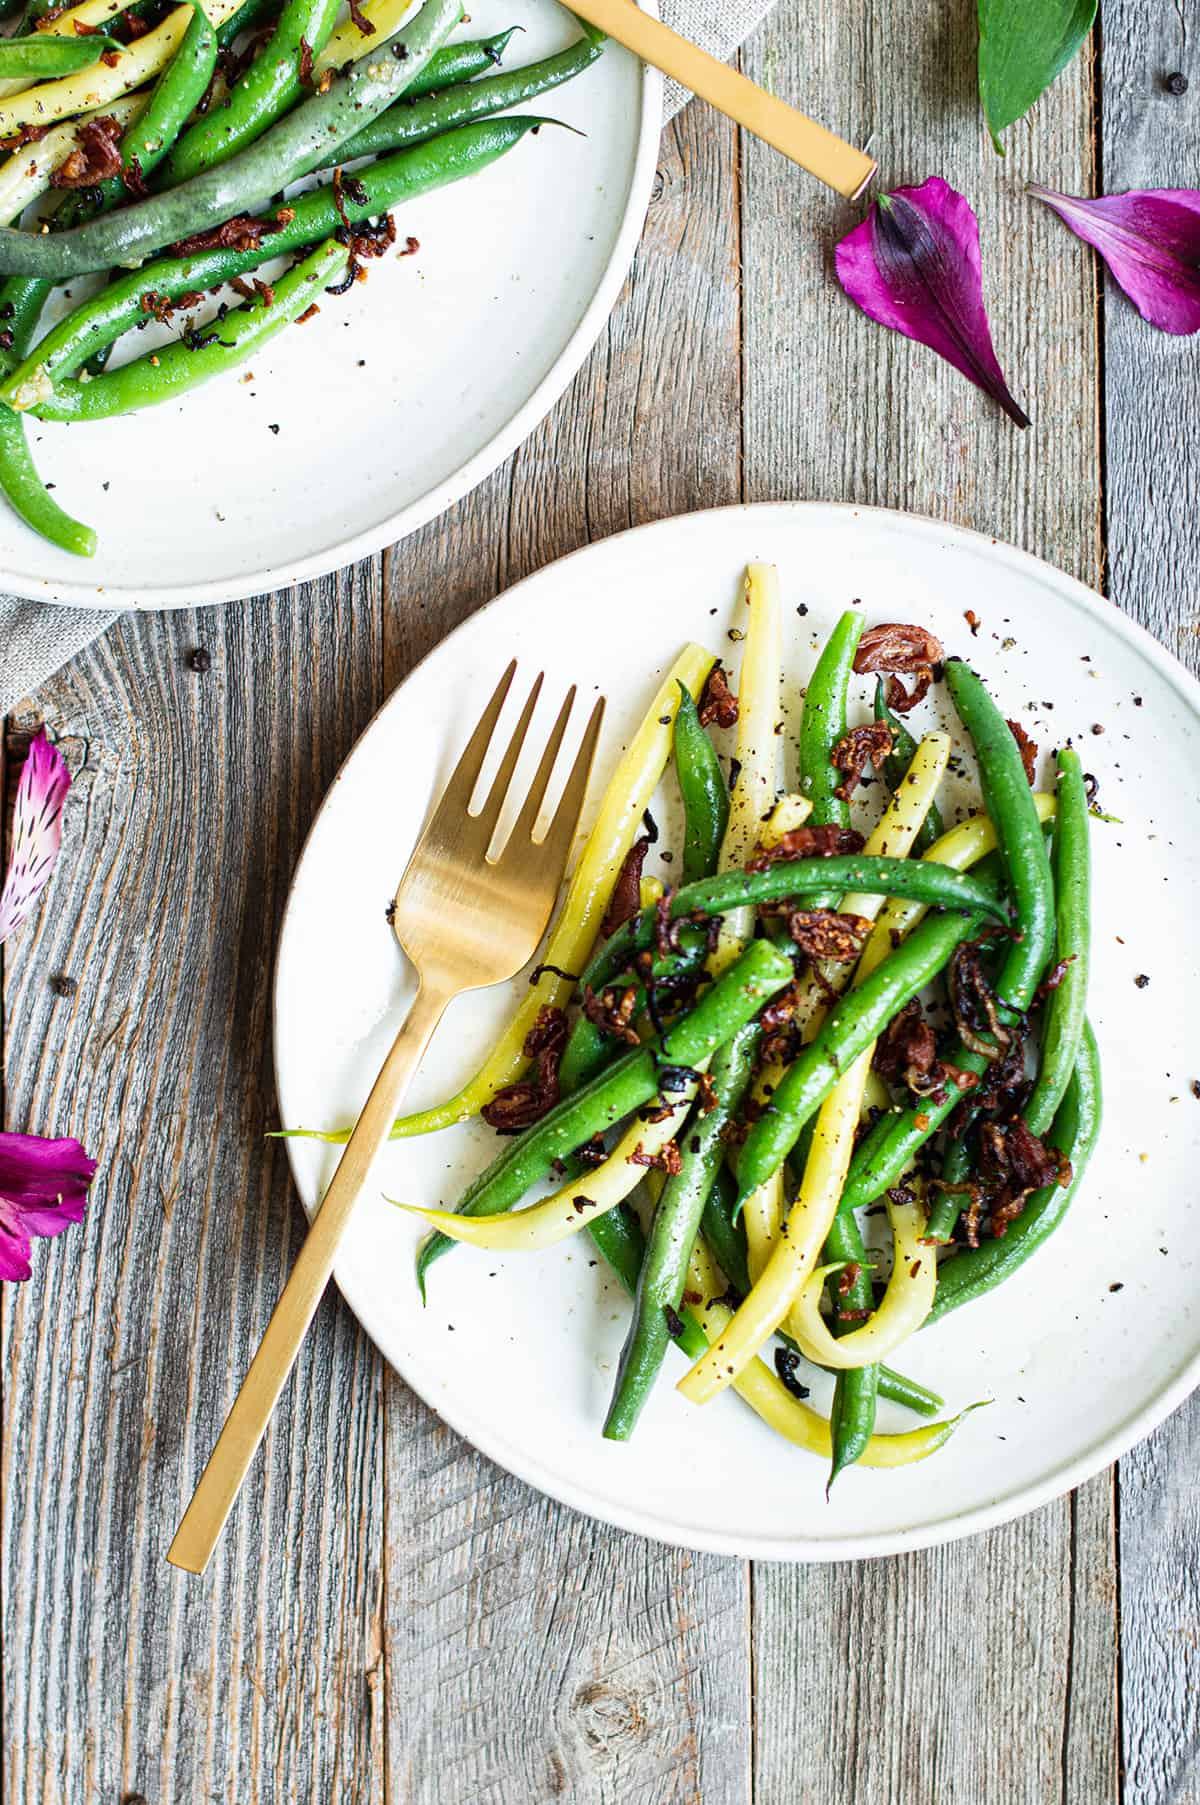 green and yellowstring beans on white plate with gold fork